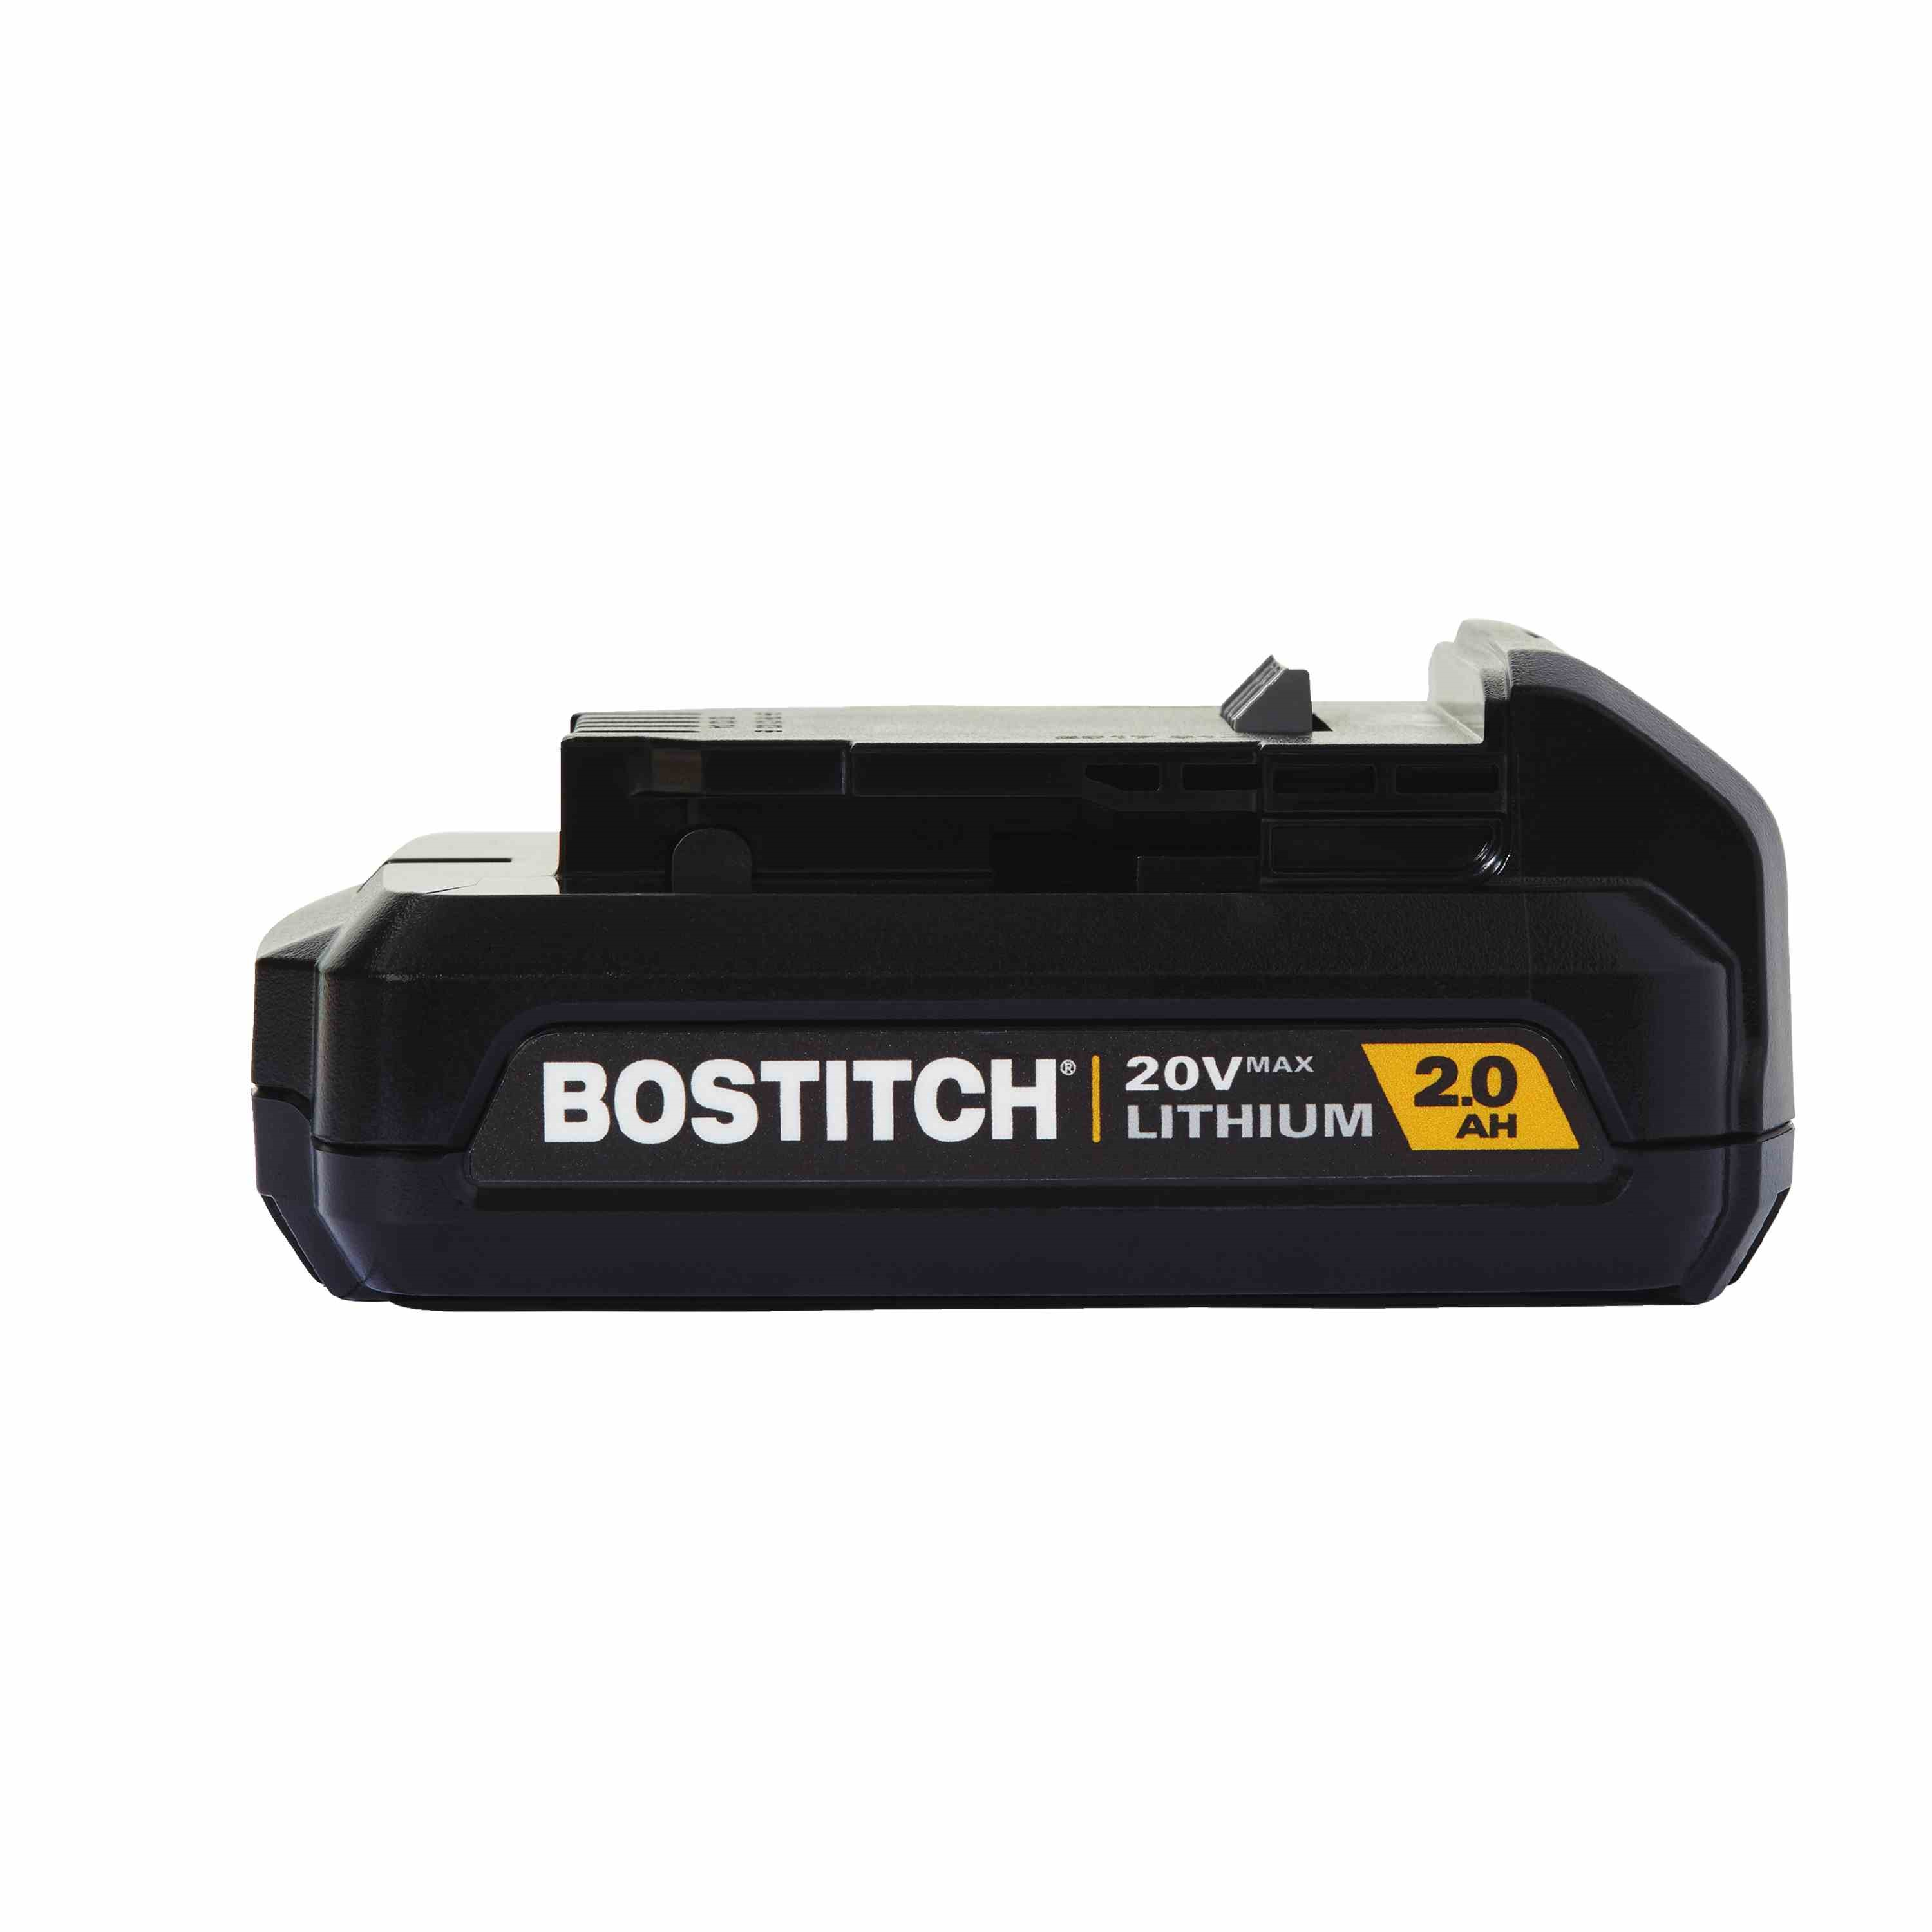 Bostitch - BOSTITCH 20V MAX 2Ah Lithium Ion Battery - BCB203